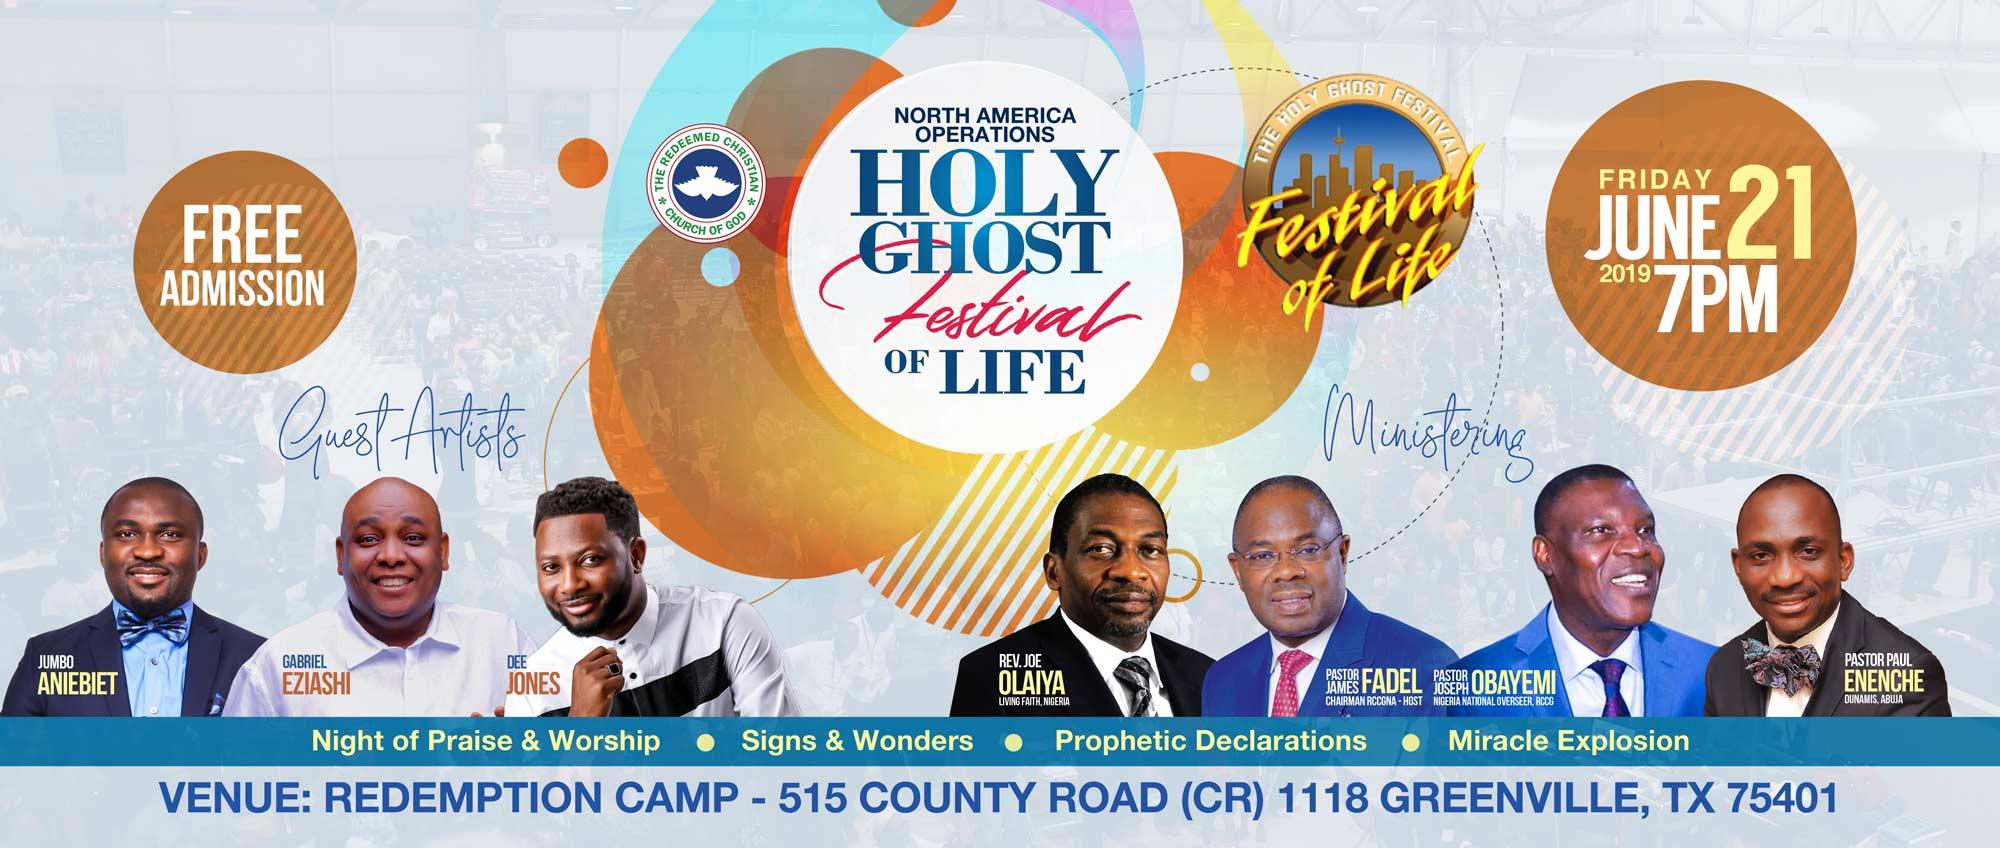 Holy Ghost Festival of Life